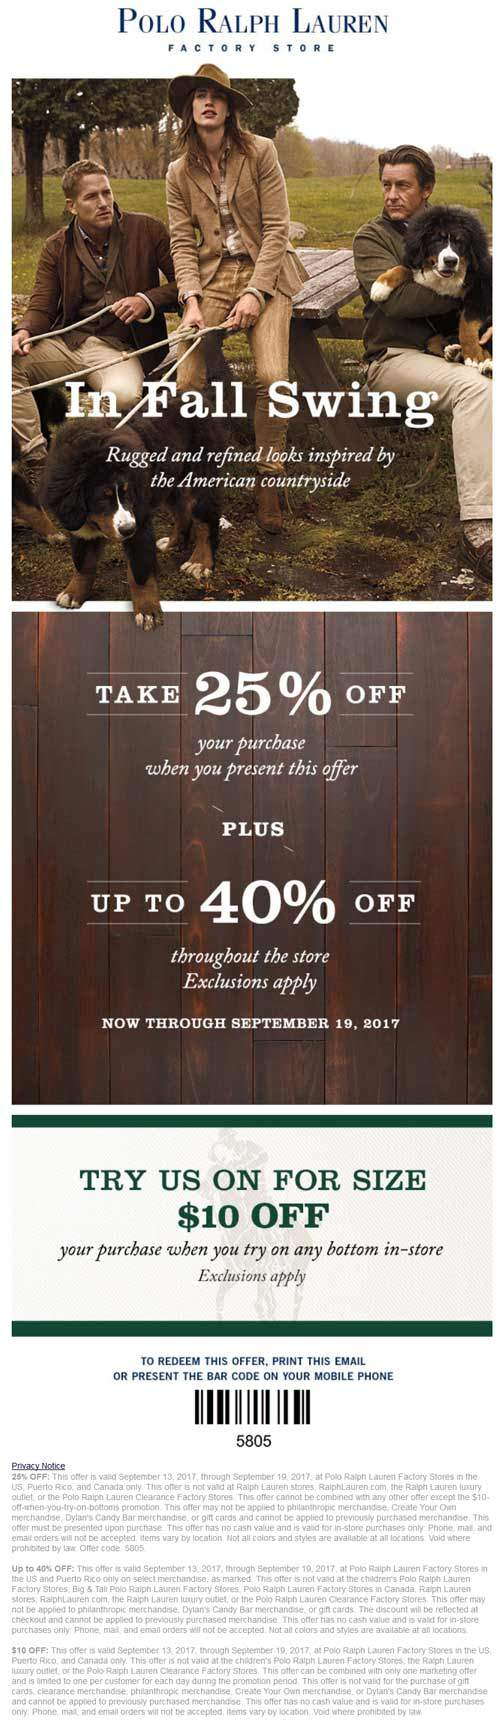 PoloRalphLaurenFactory.com Promo Coupon 25% off & more at Polo Ralph Lauren Factory stores